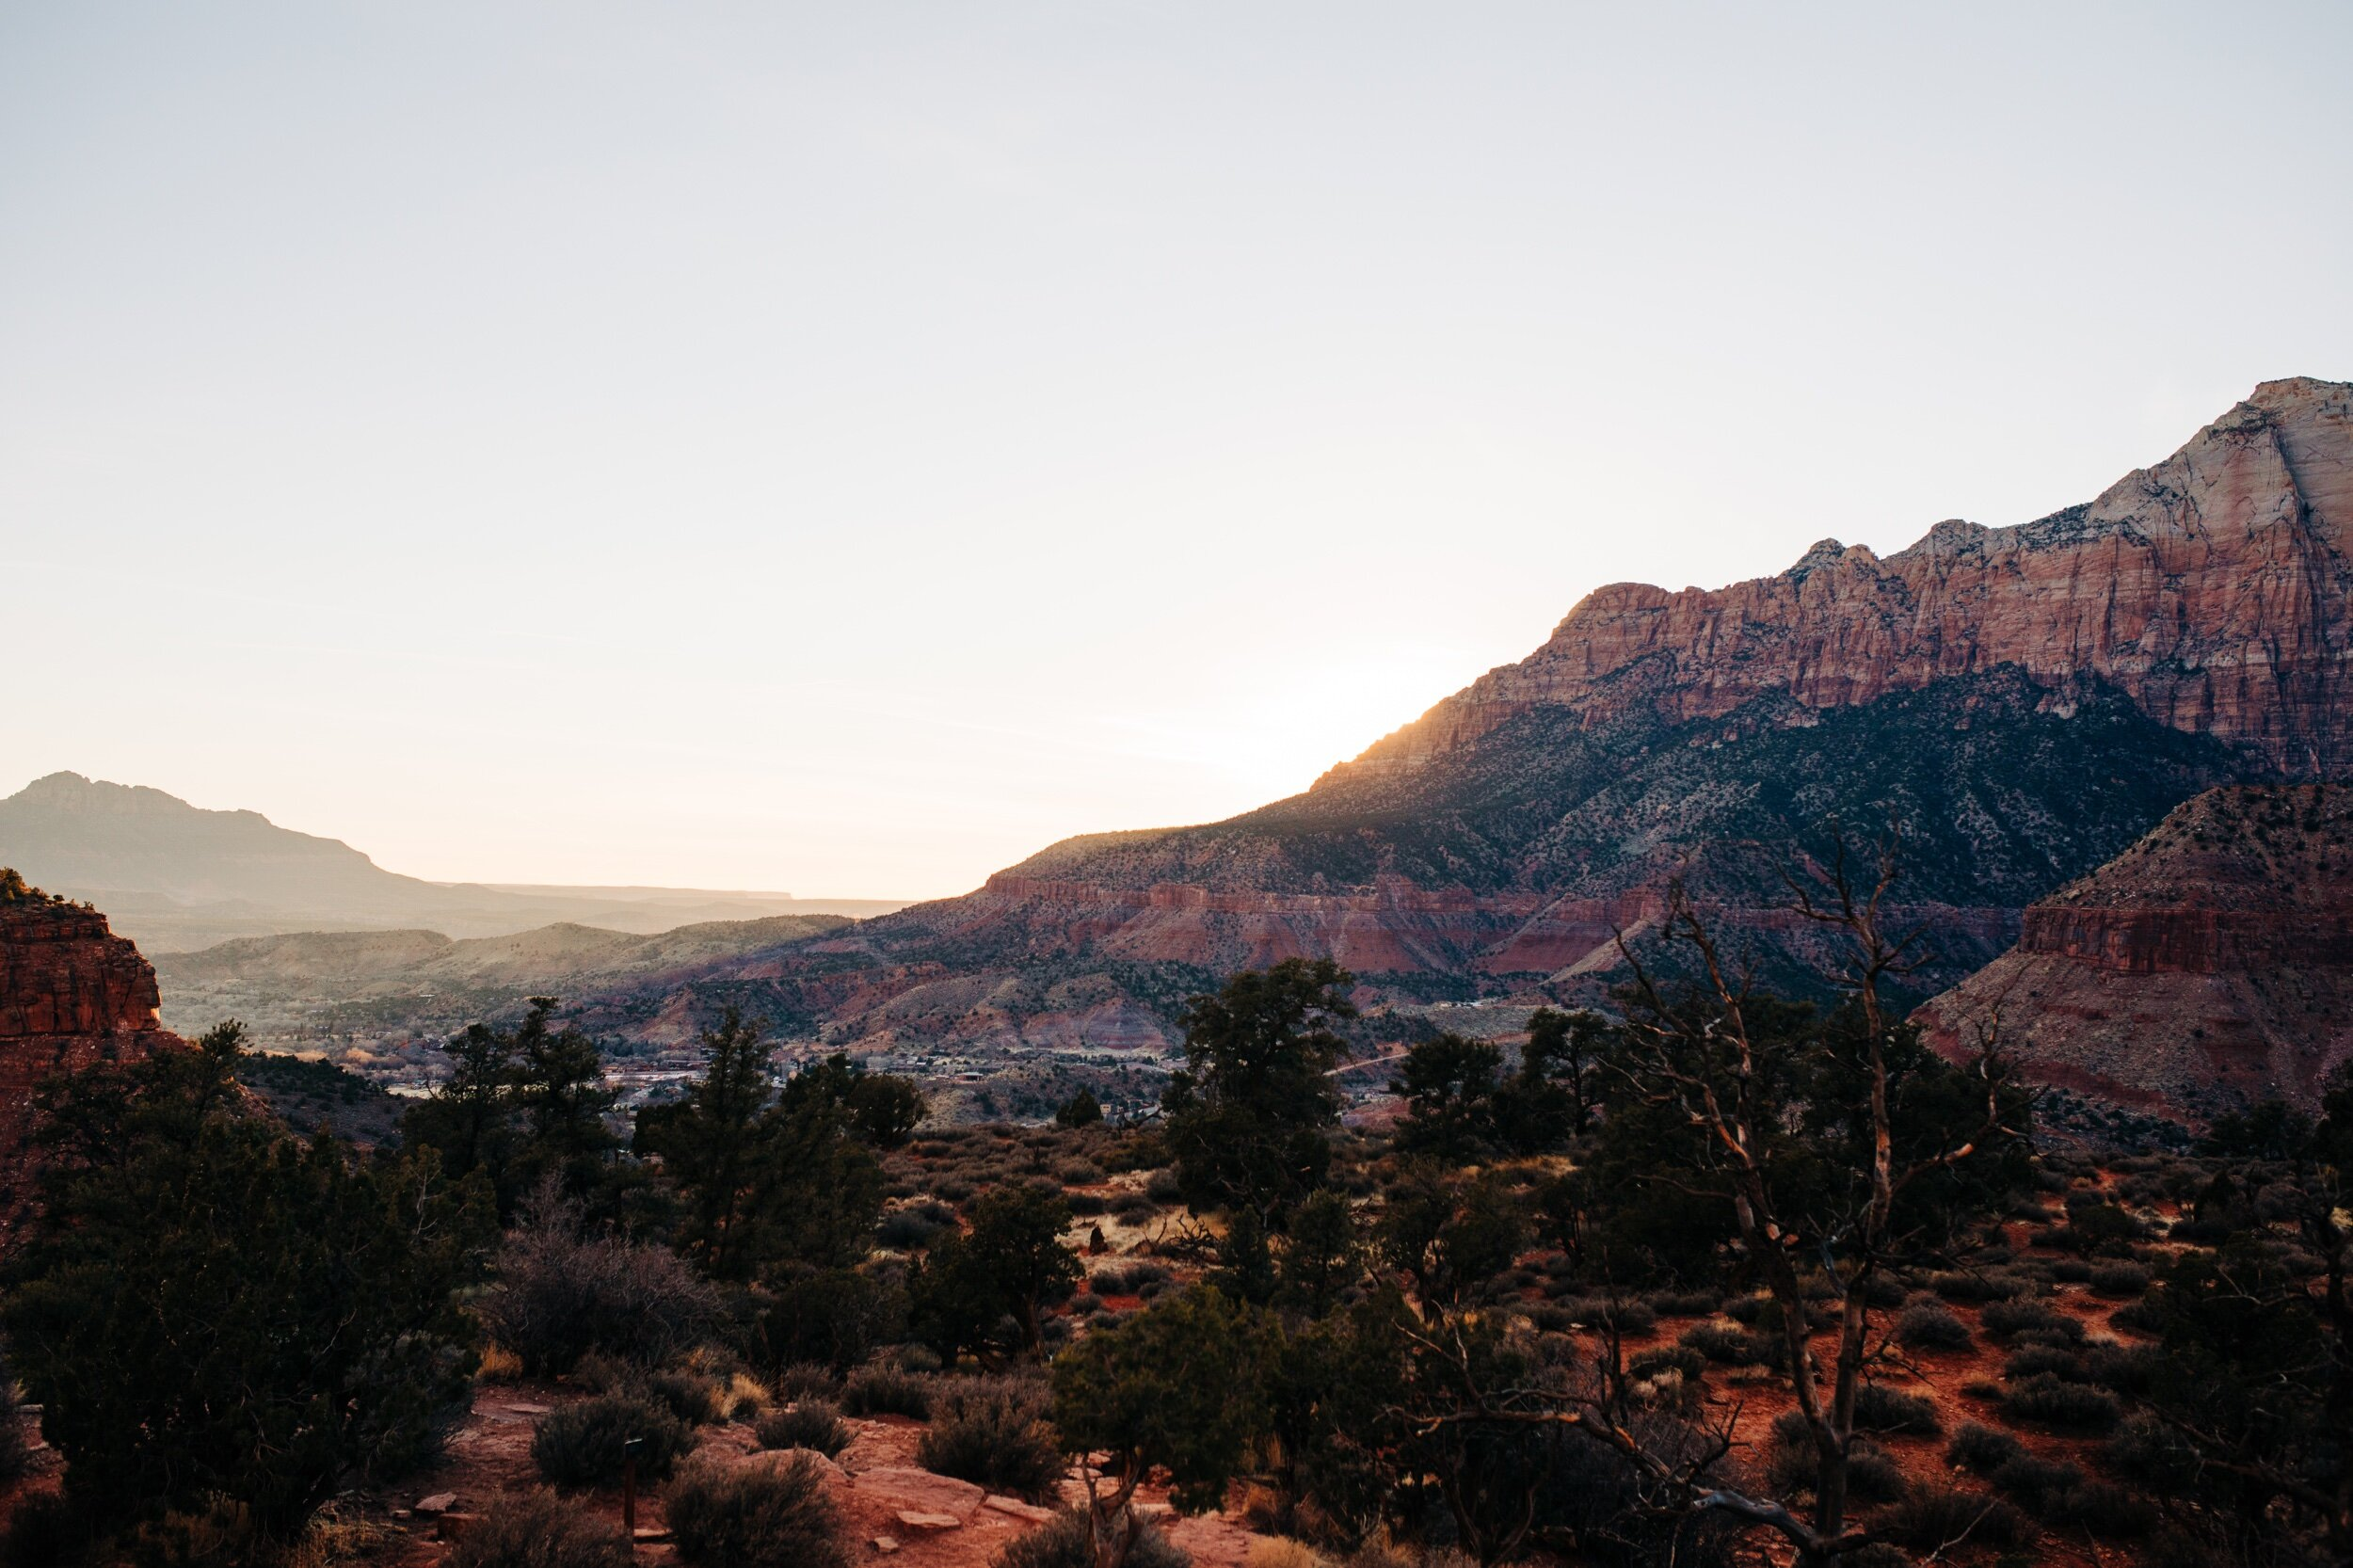 View from Watchman's trail